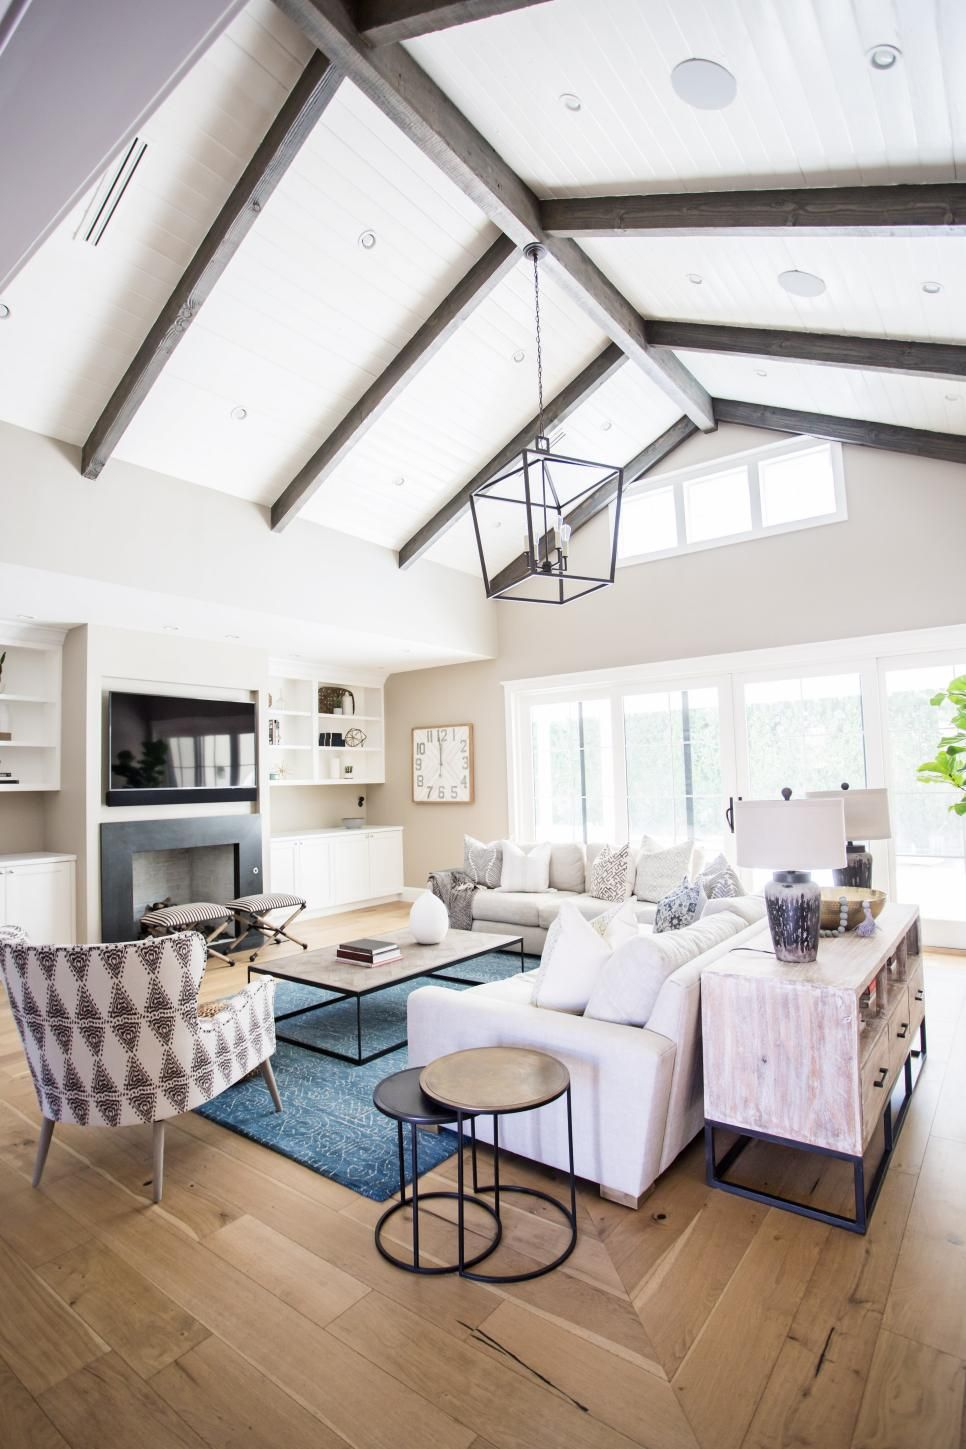 Transitional Living Room Boasts Vaulted Ceilings With Wood Beams